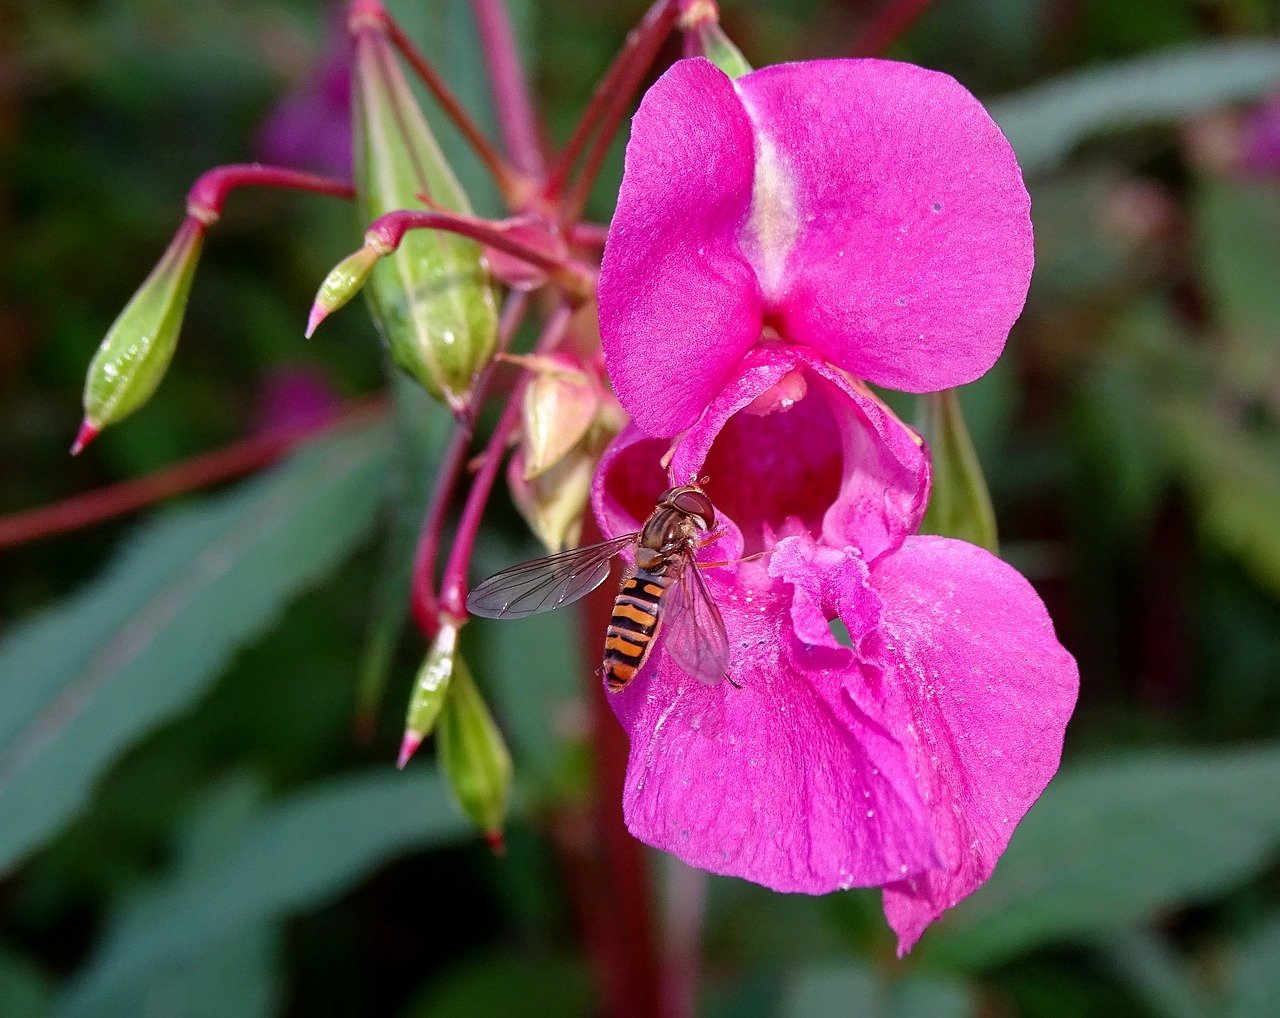 Balsam Plant with vibrant attractive flowers